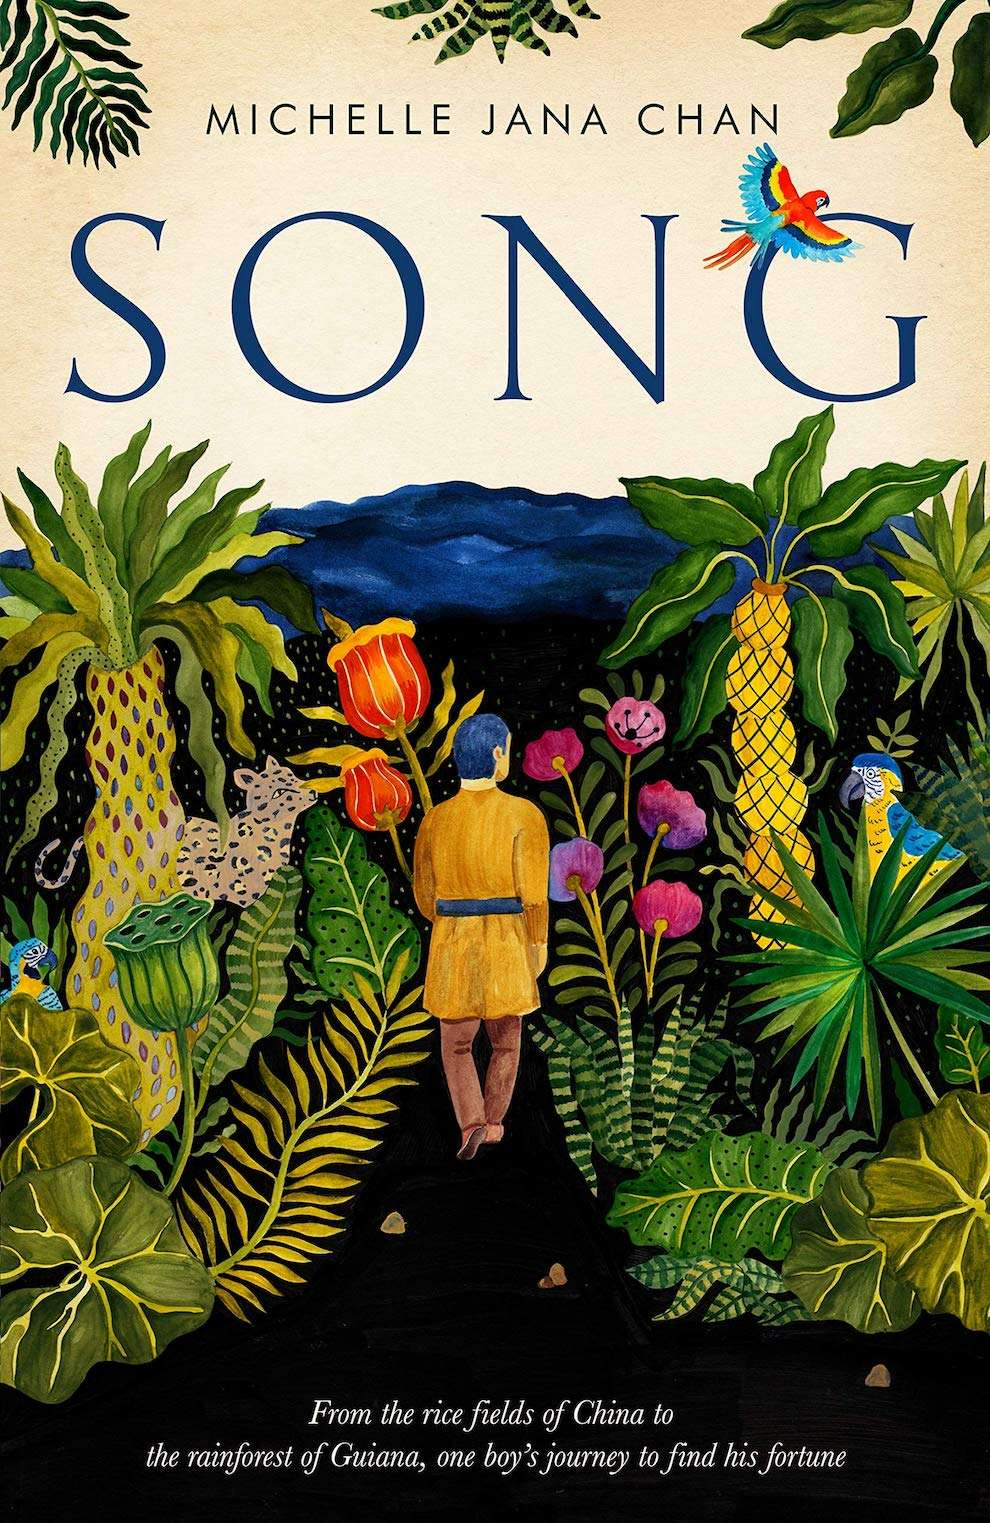 Aitch, Delicate handpainted book cover of a man walking through a jungle